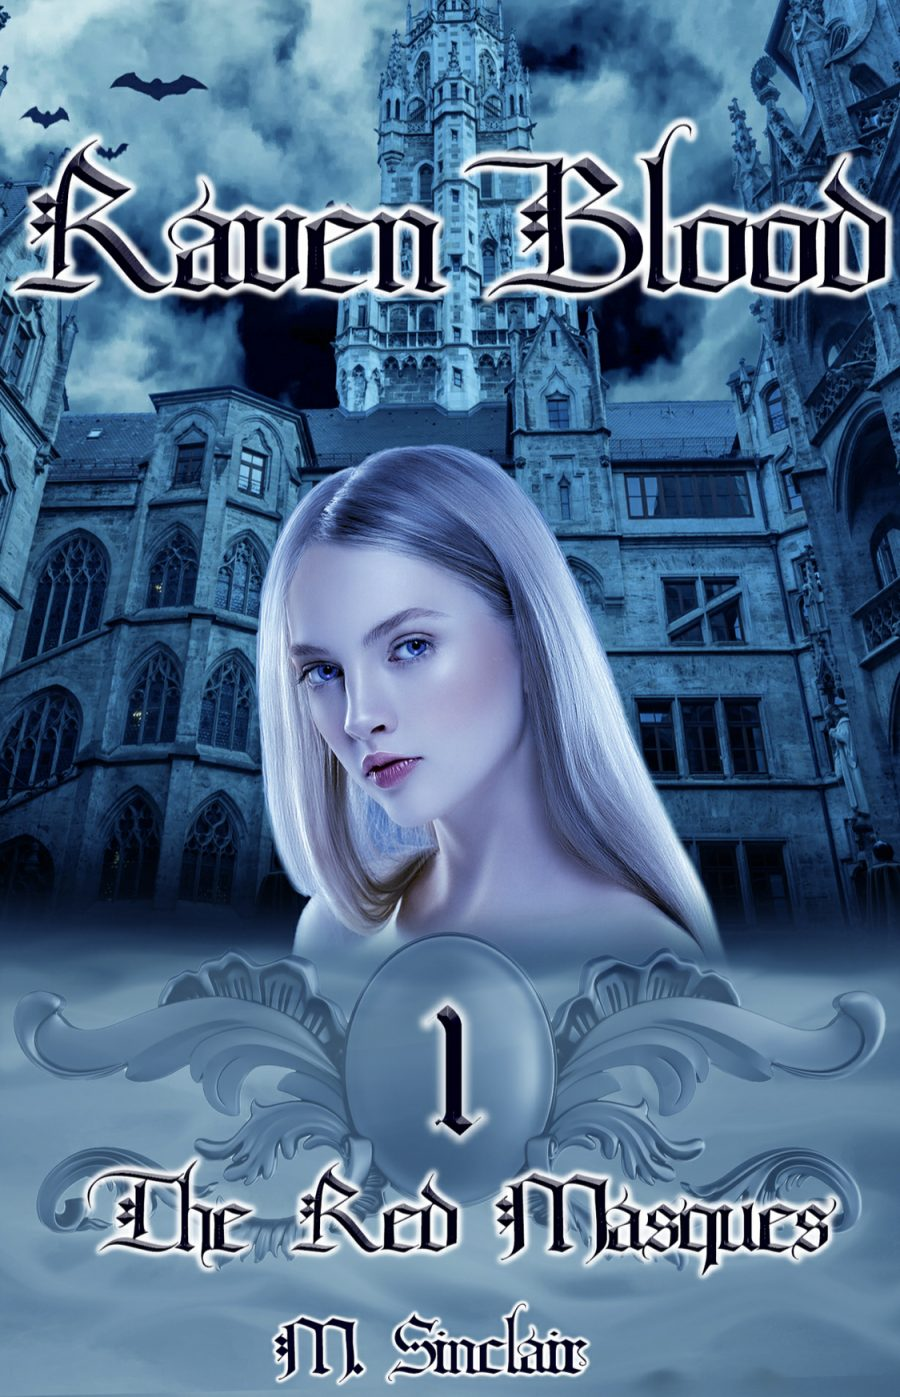 Raven Blood (The Red Masques - Book 1) by M. Sinclair - A Book Review #BookReview #SlowBurn #RH #ReverseHarem #PNR #Fantasy #KindleUnlimited #KU